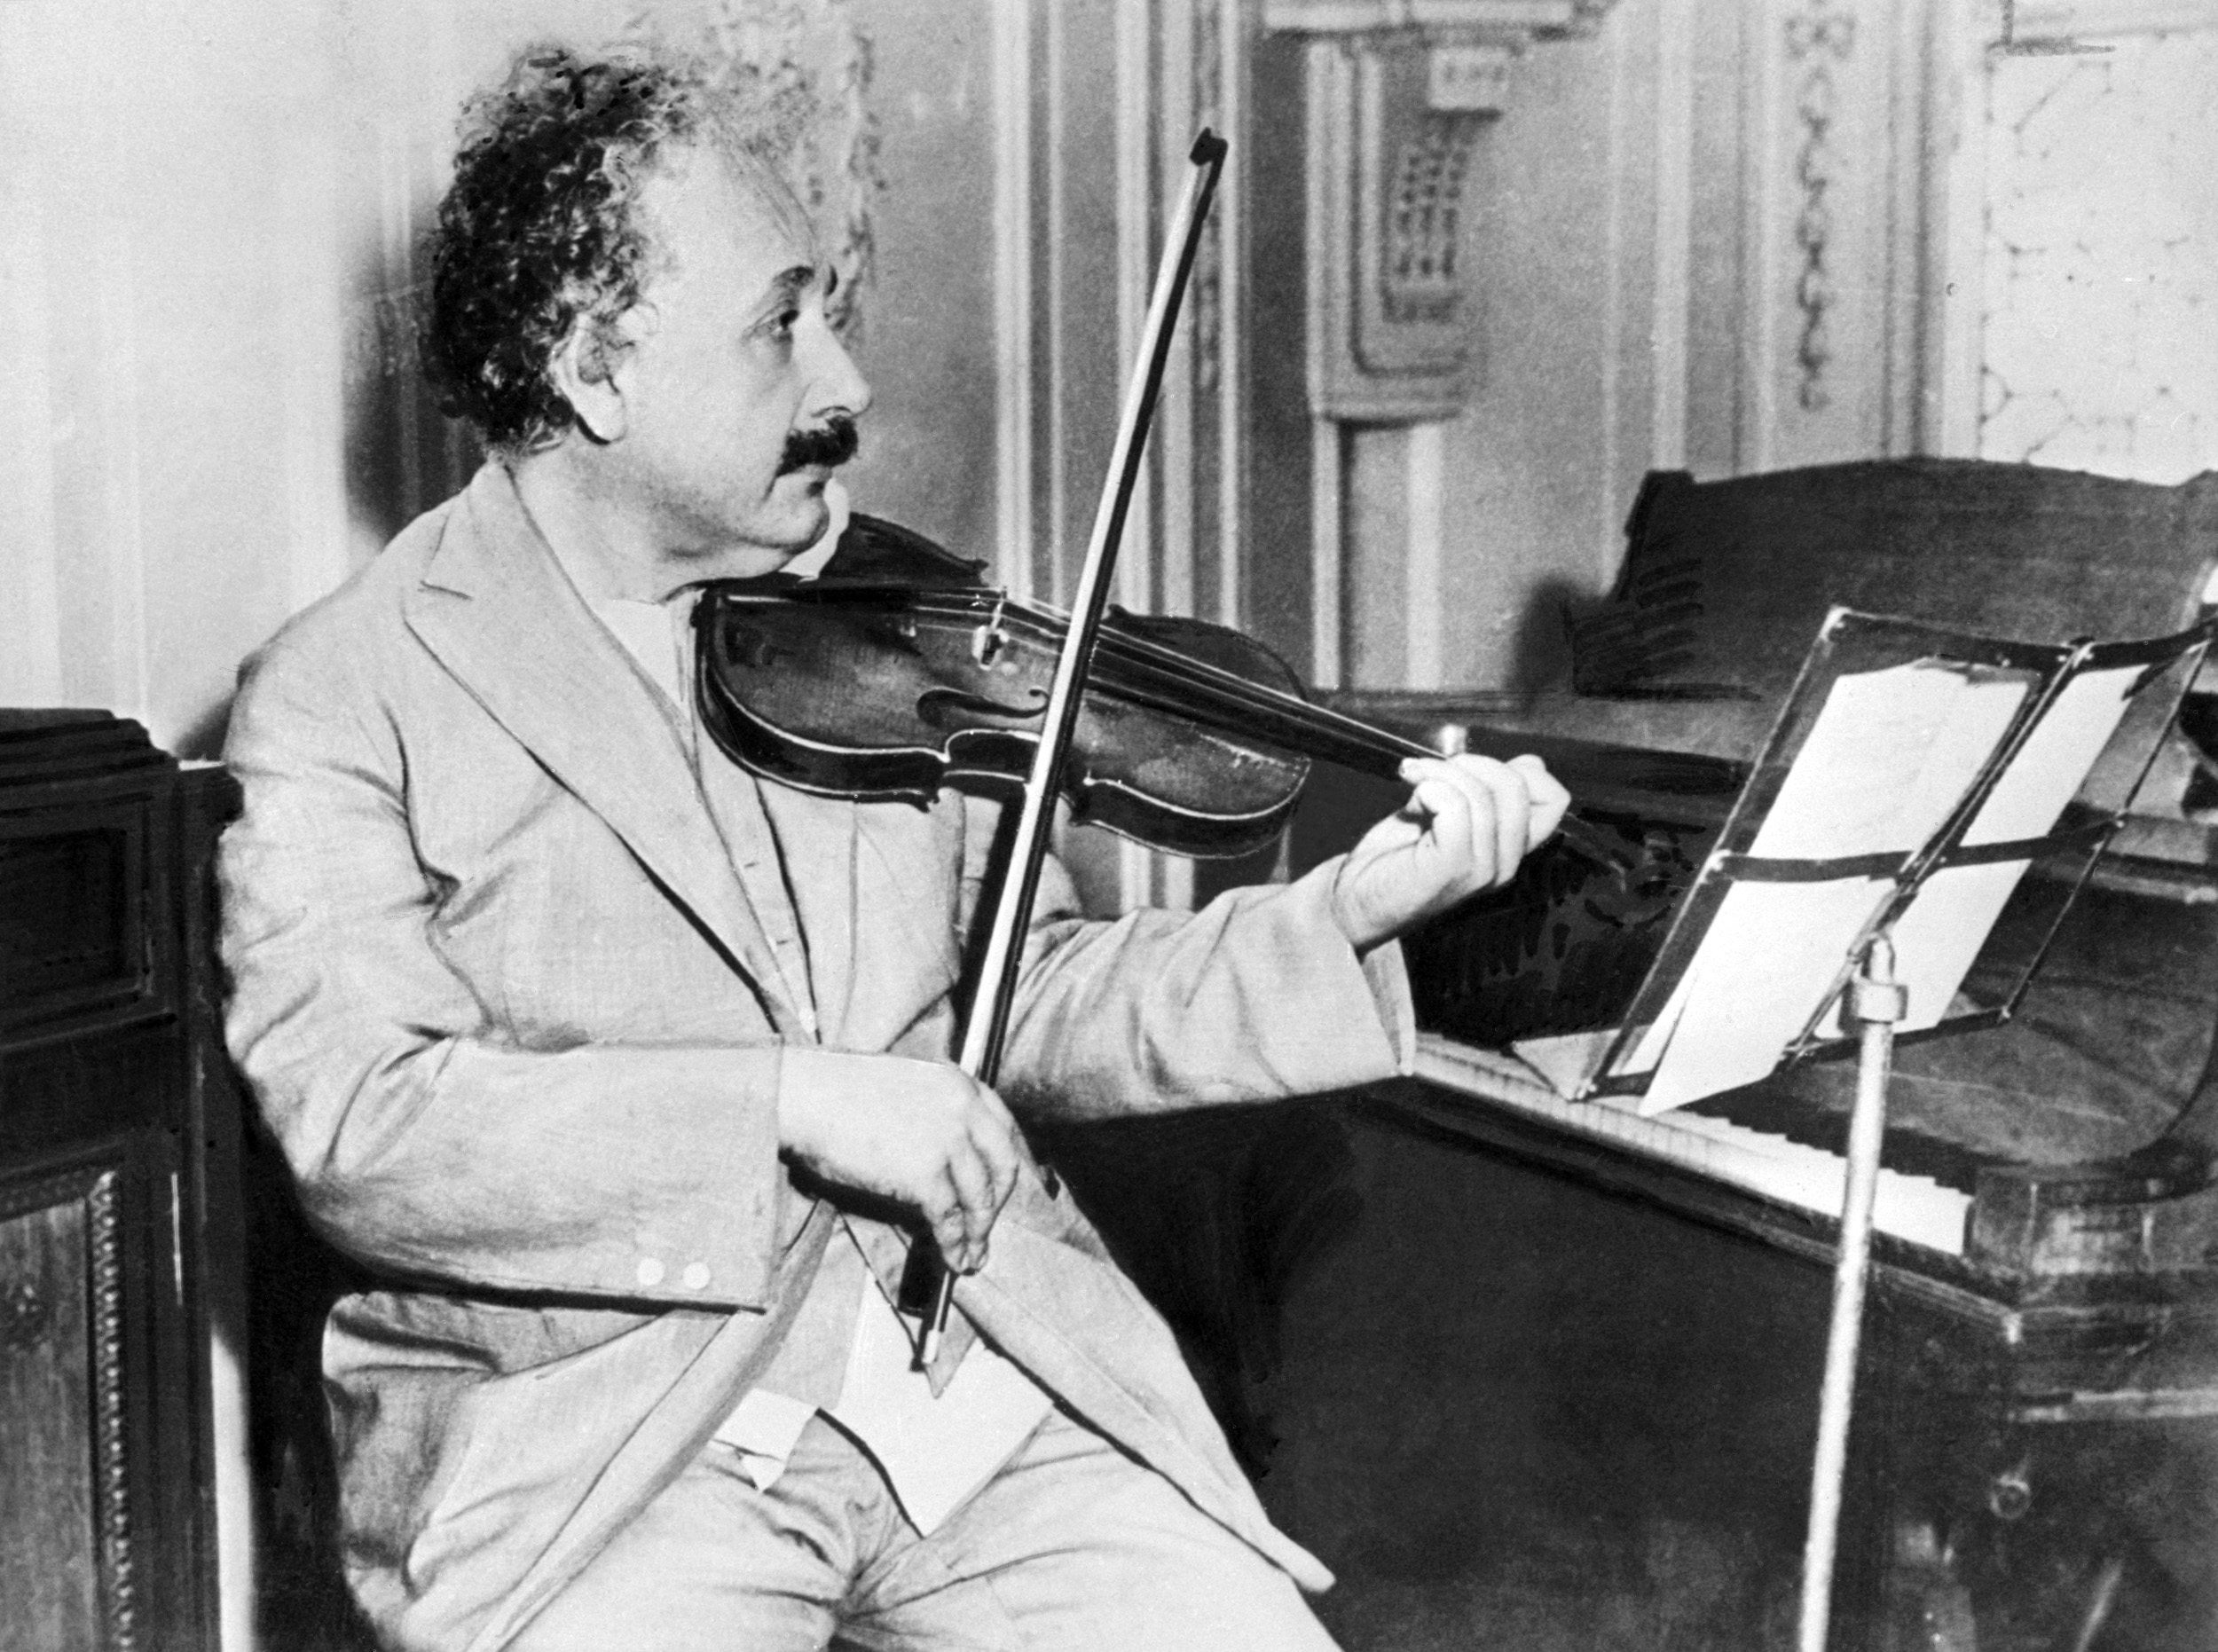 German-born Swiss-American physicist Albert Einstein (1879–1955), author of theory of relativity, awarded the Nobel Prize for Physics in 1921, playing the violin in 1931.